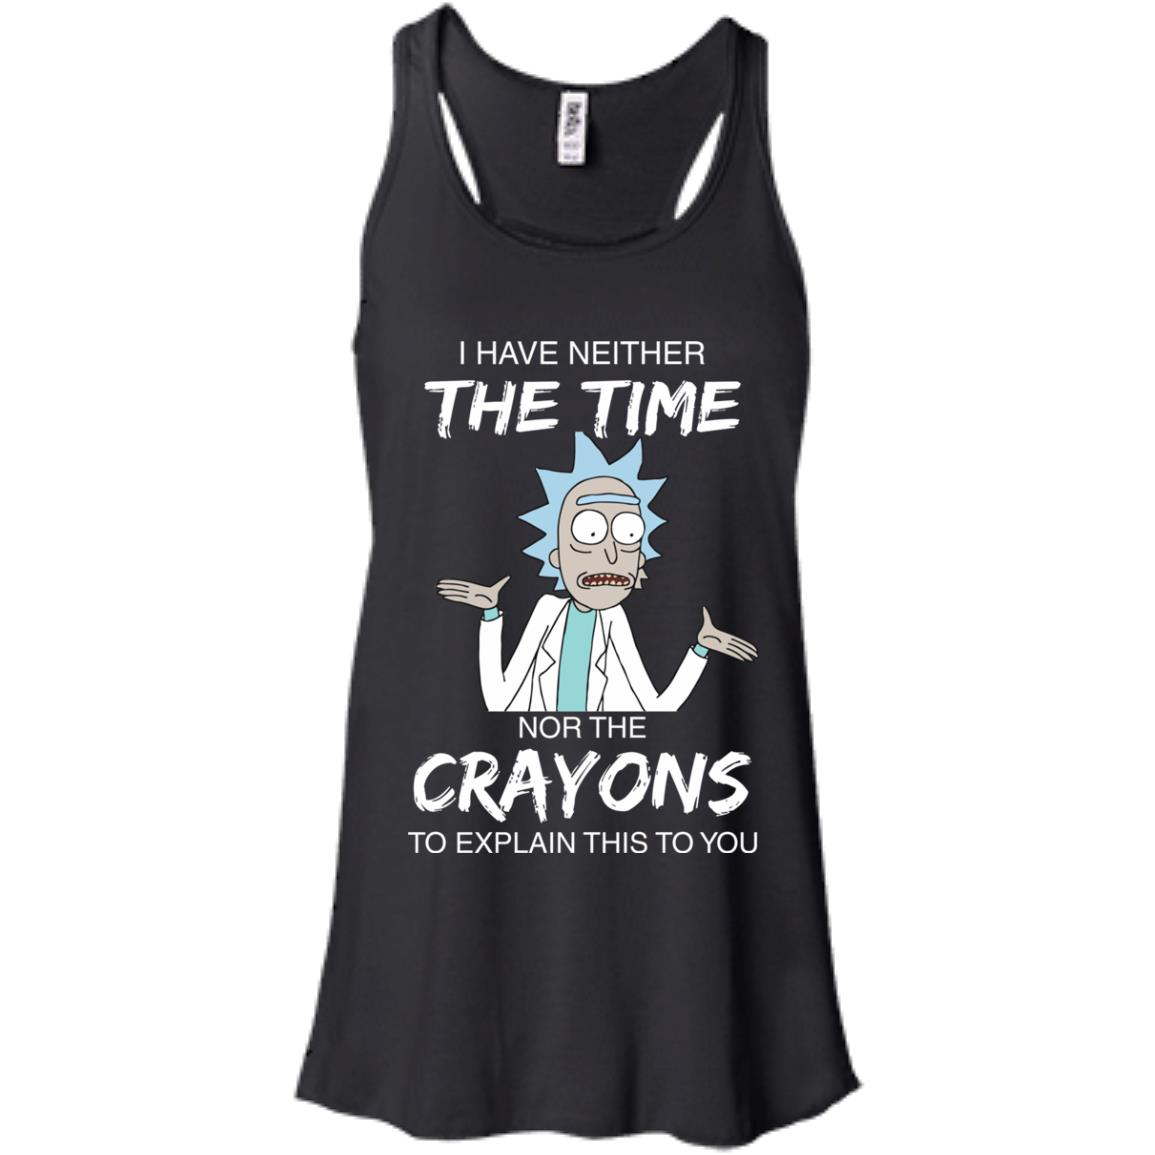 image 1107px Rick and Morty: I have Neither Nor The Crayons To Explanin This To You T Shirts